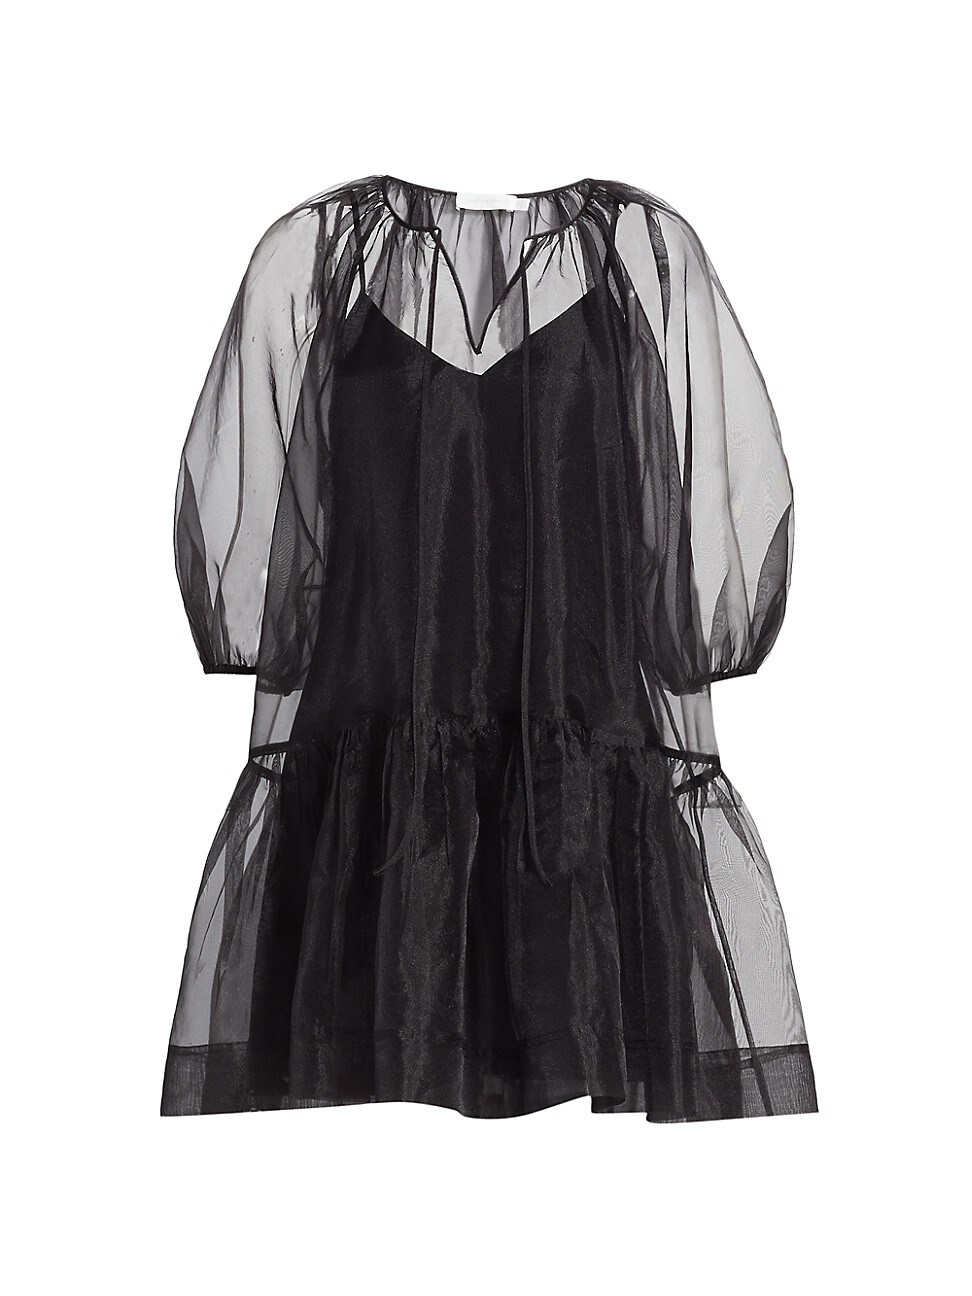 Jonathan Simkhai Mini dresses WOMEN'S EVERLEE ORGANZA PUFF-SLEEVE MINI DRESS